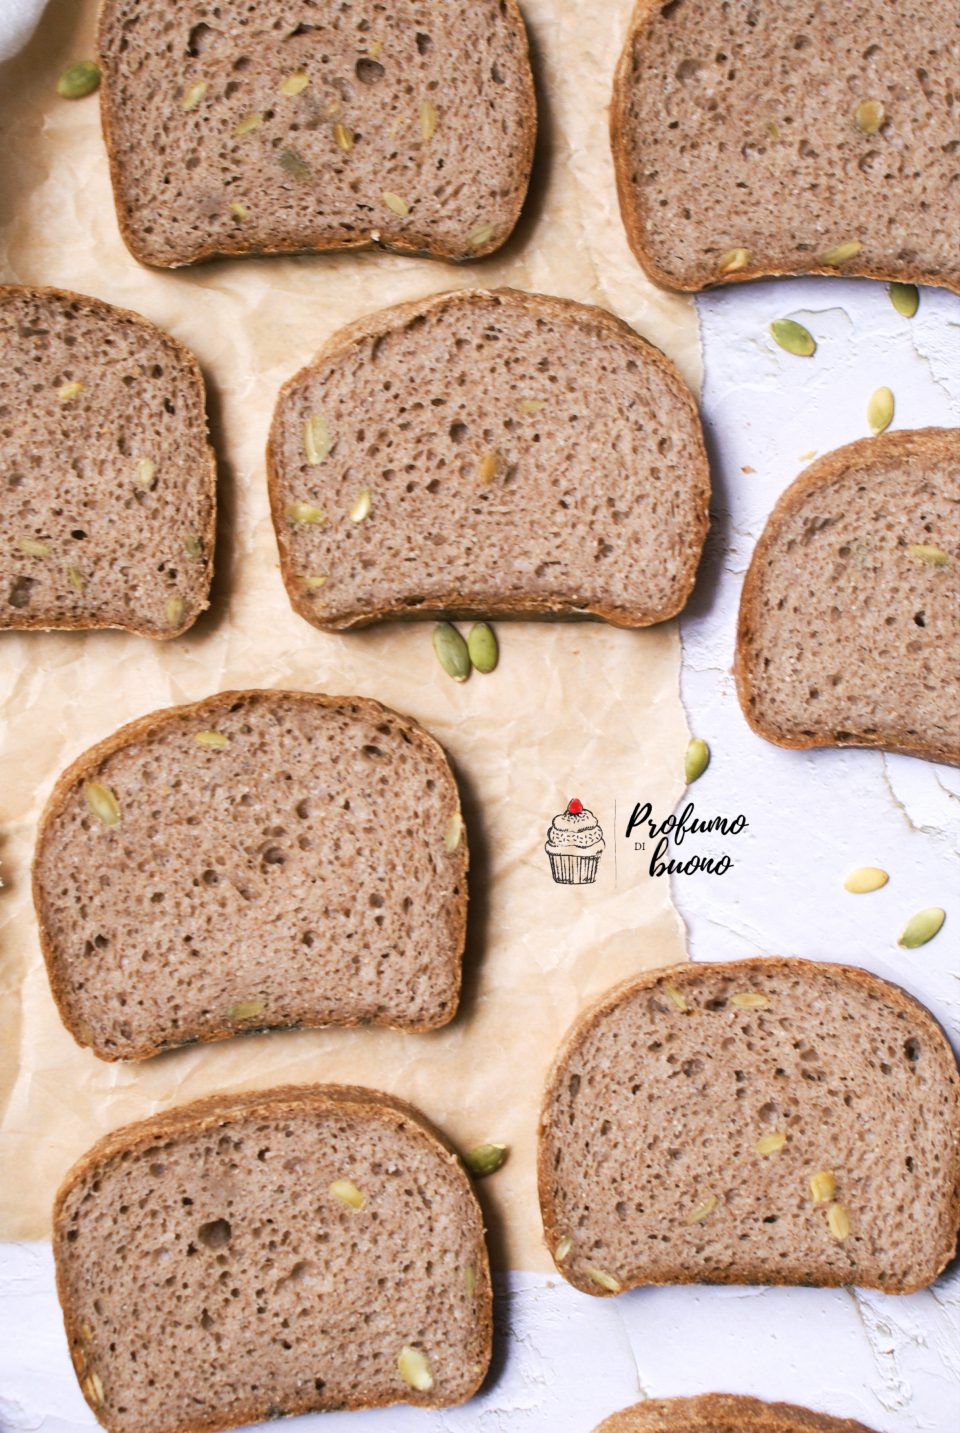 Gluten free rustic seeded bread